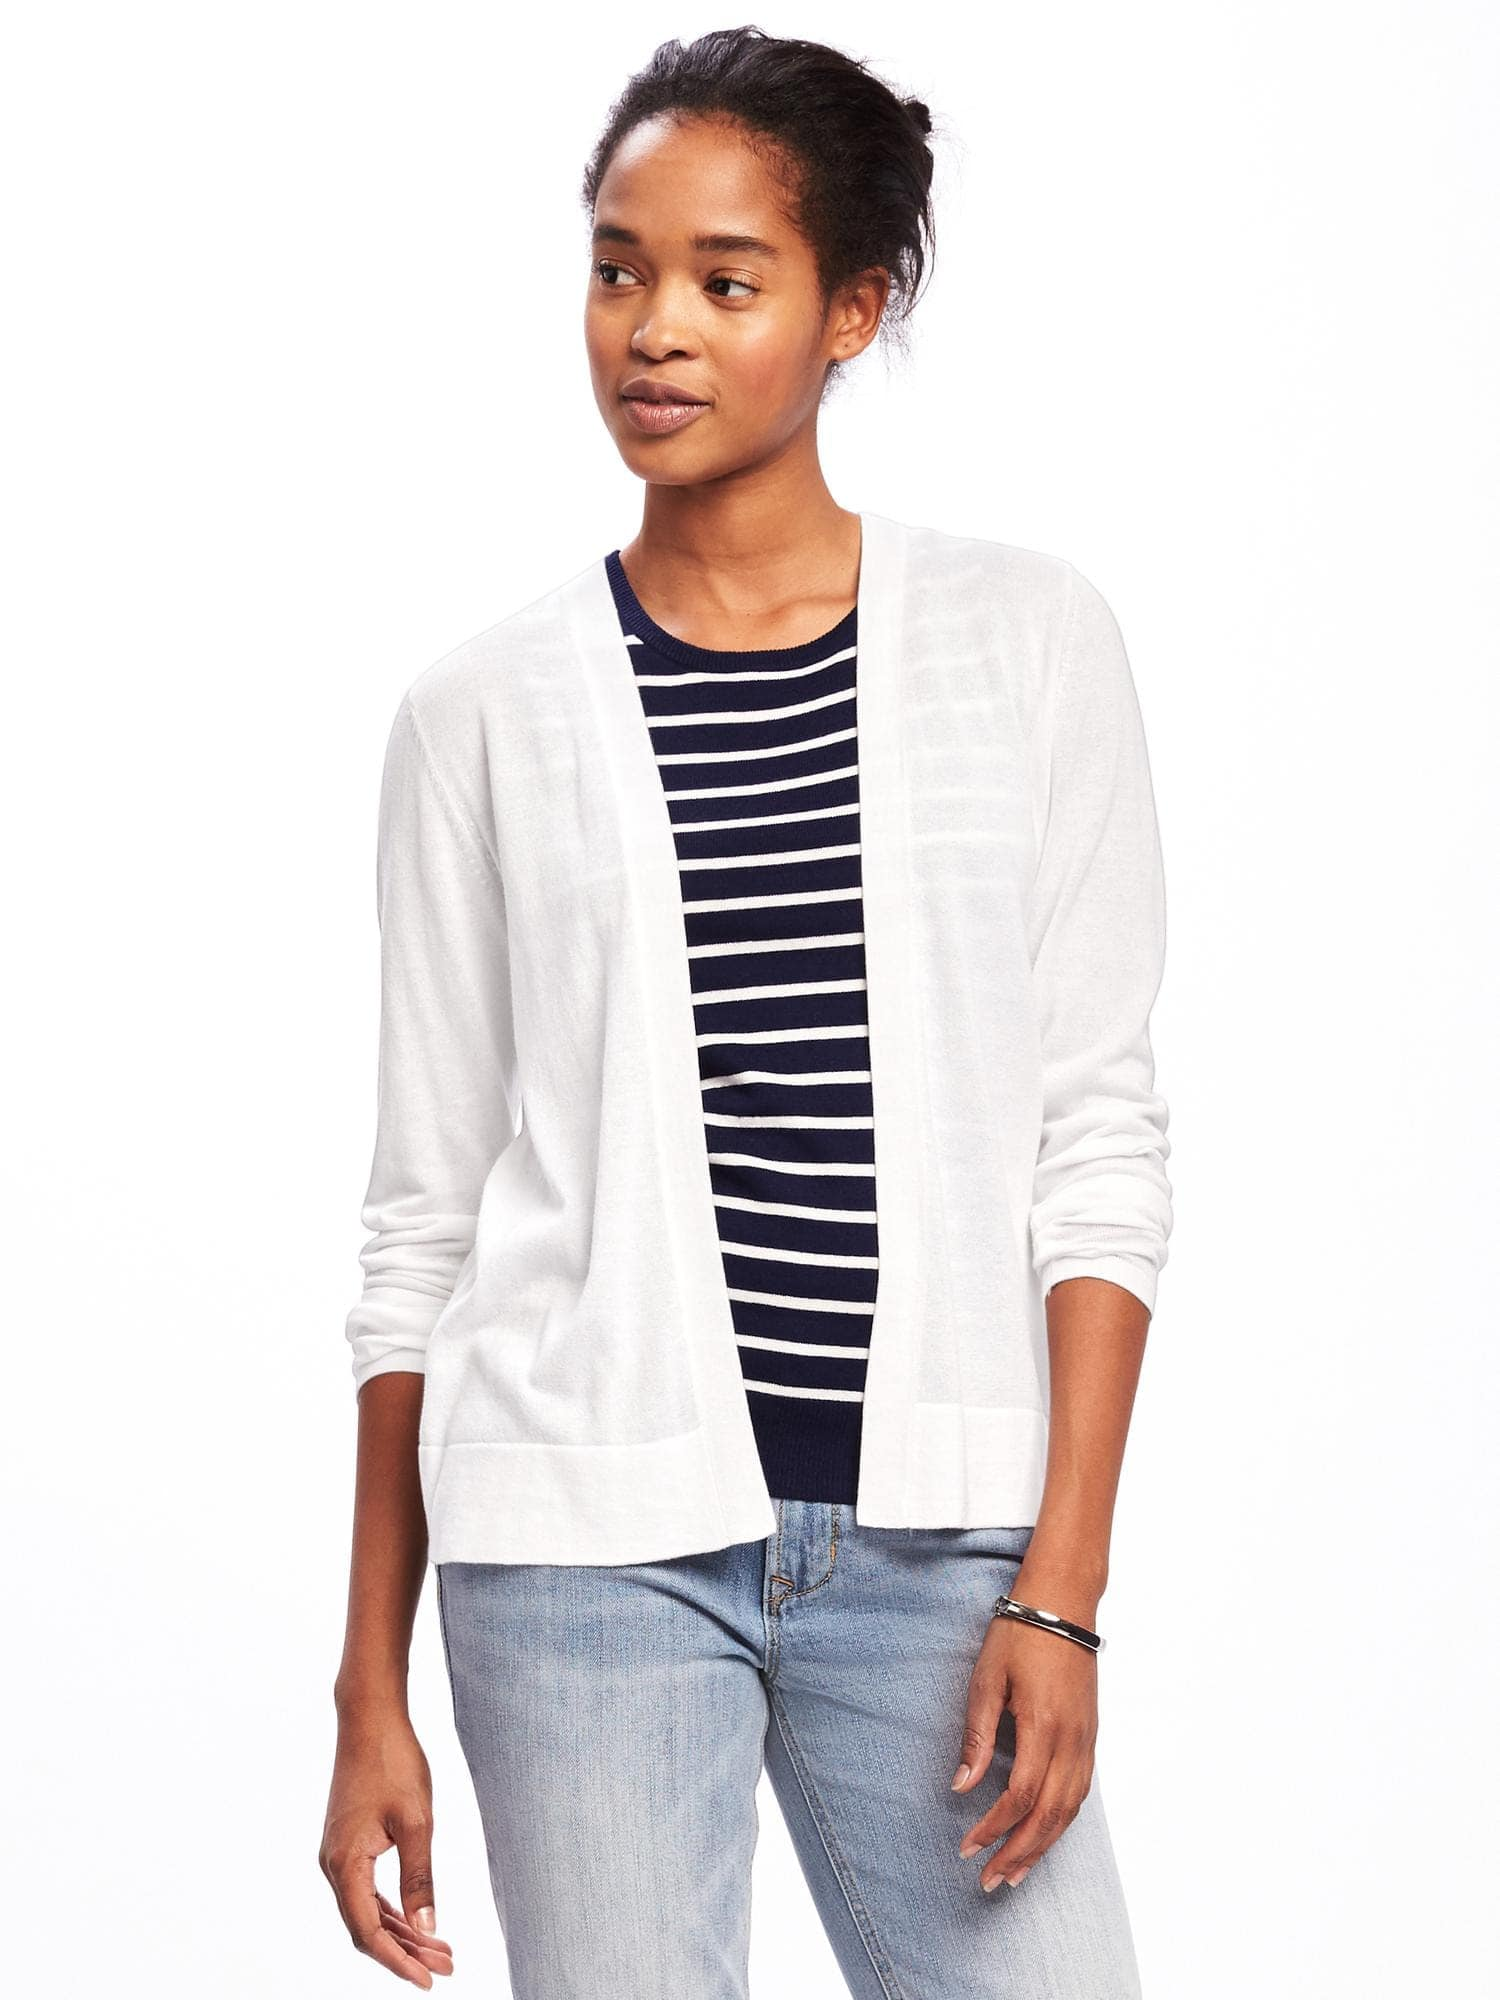 Up to 75% off Clearance @ Old Navy + FS over $50